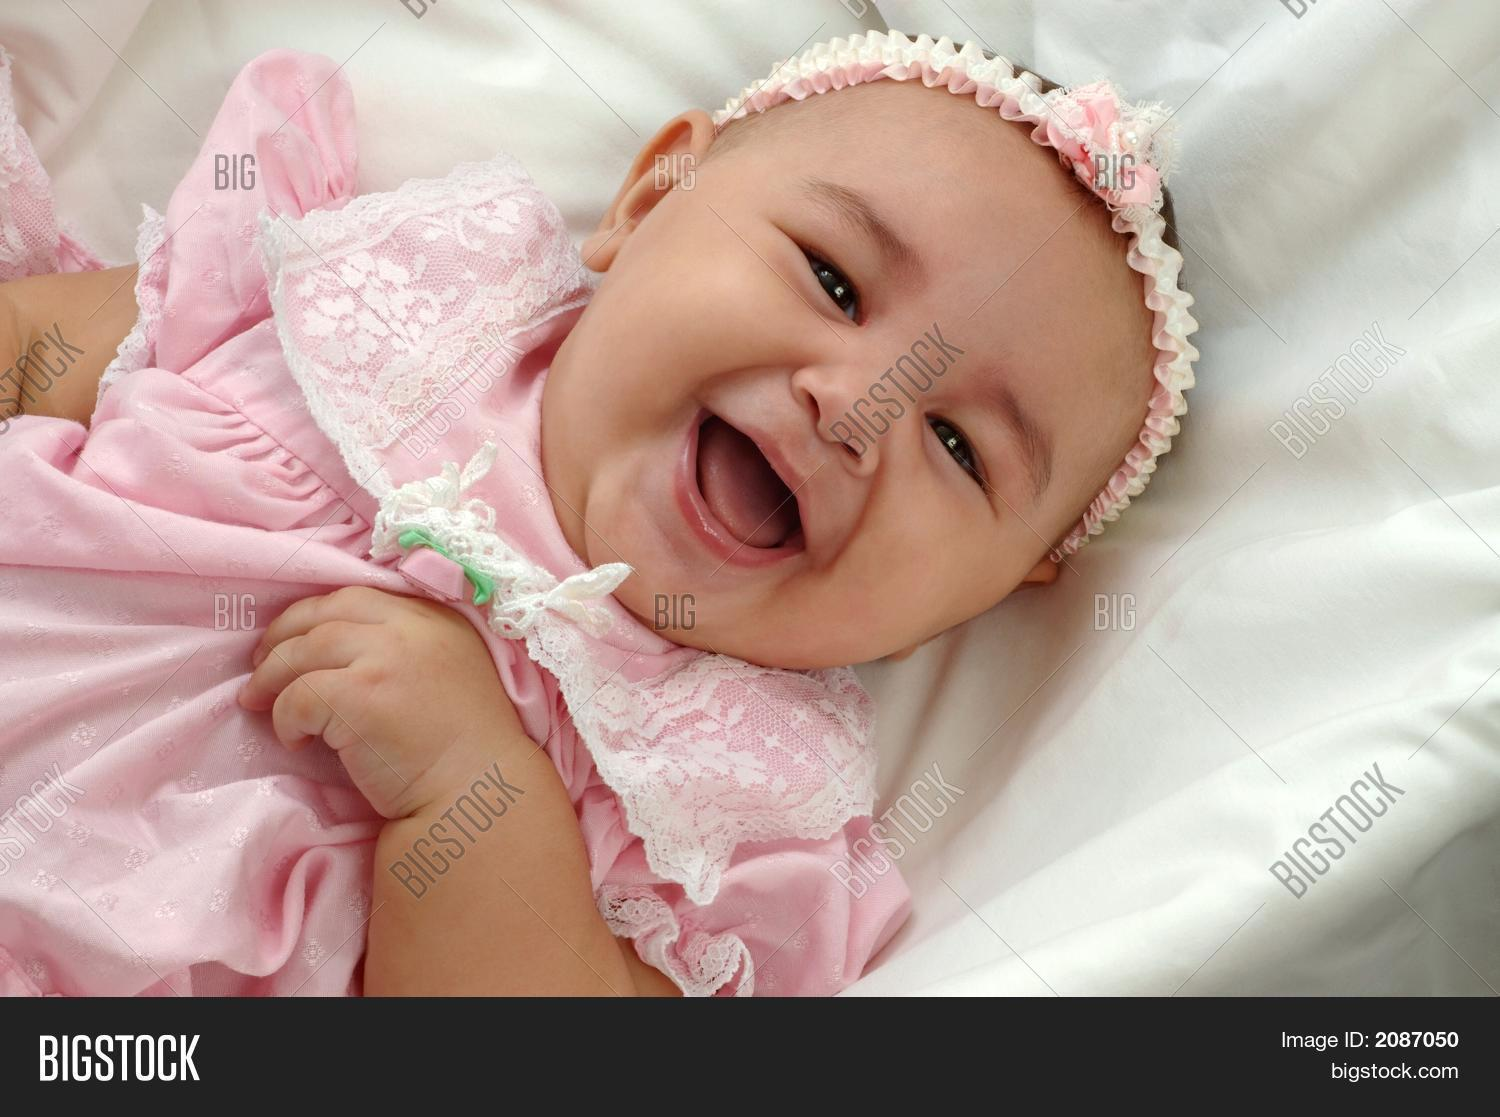 cute baby girl pink image & photo (free trial) | bigstock